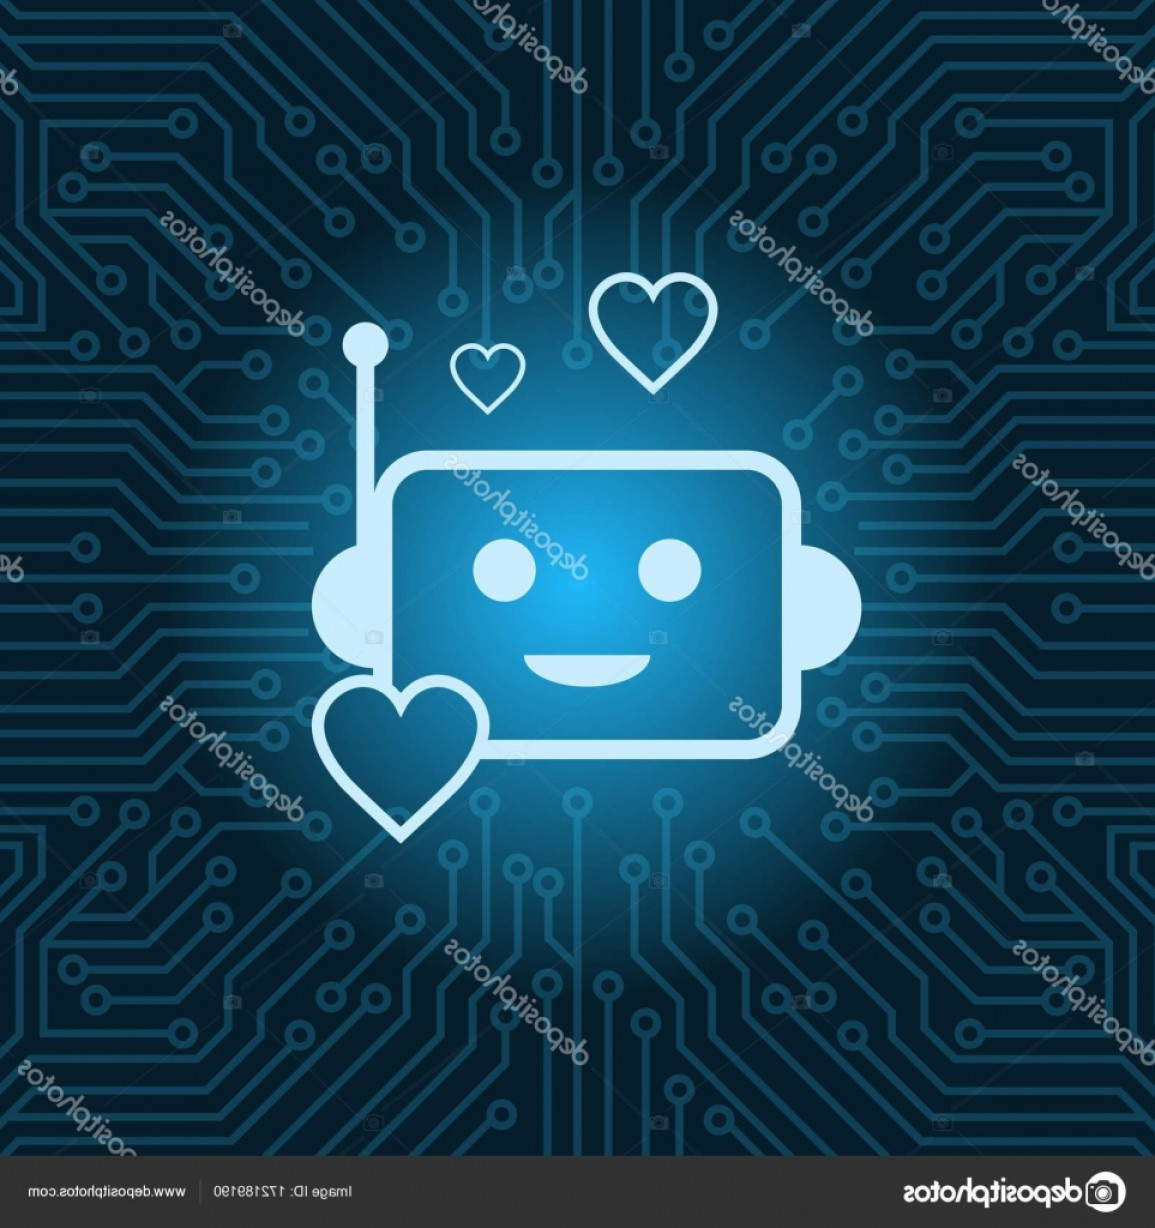 Motherboard Vector With A Heart: Stock Illustration Chat Bot Face Icon Heart